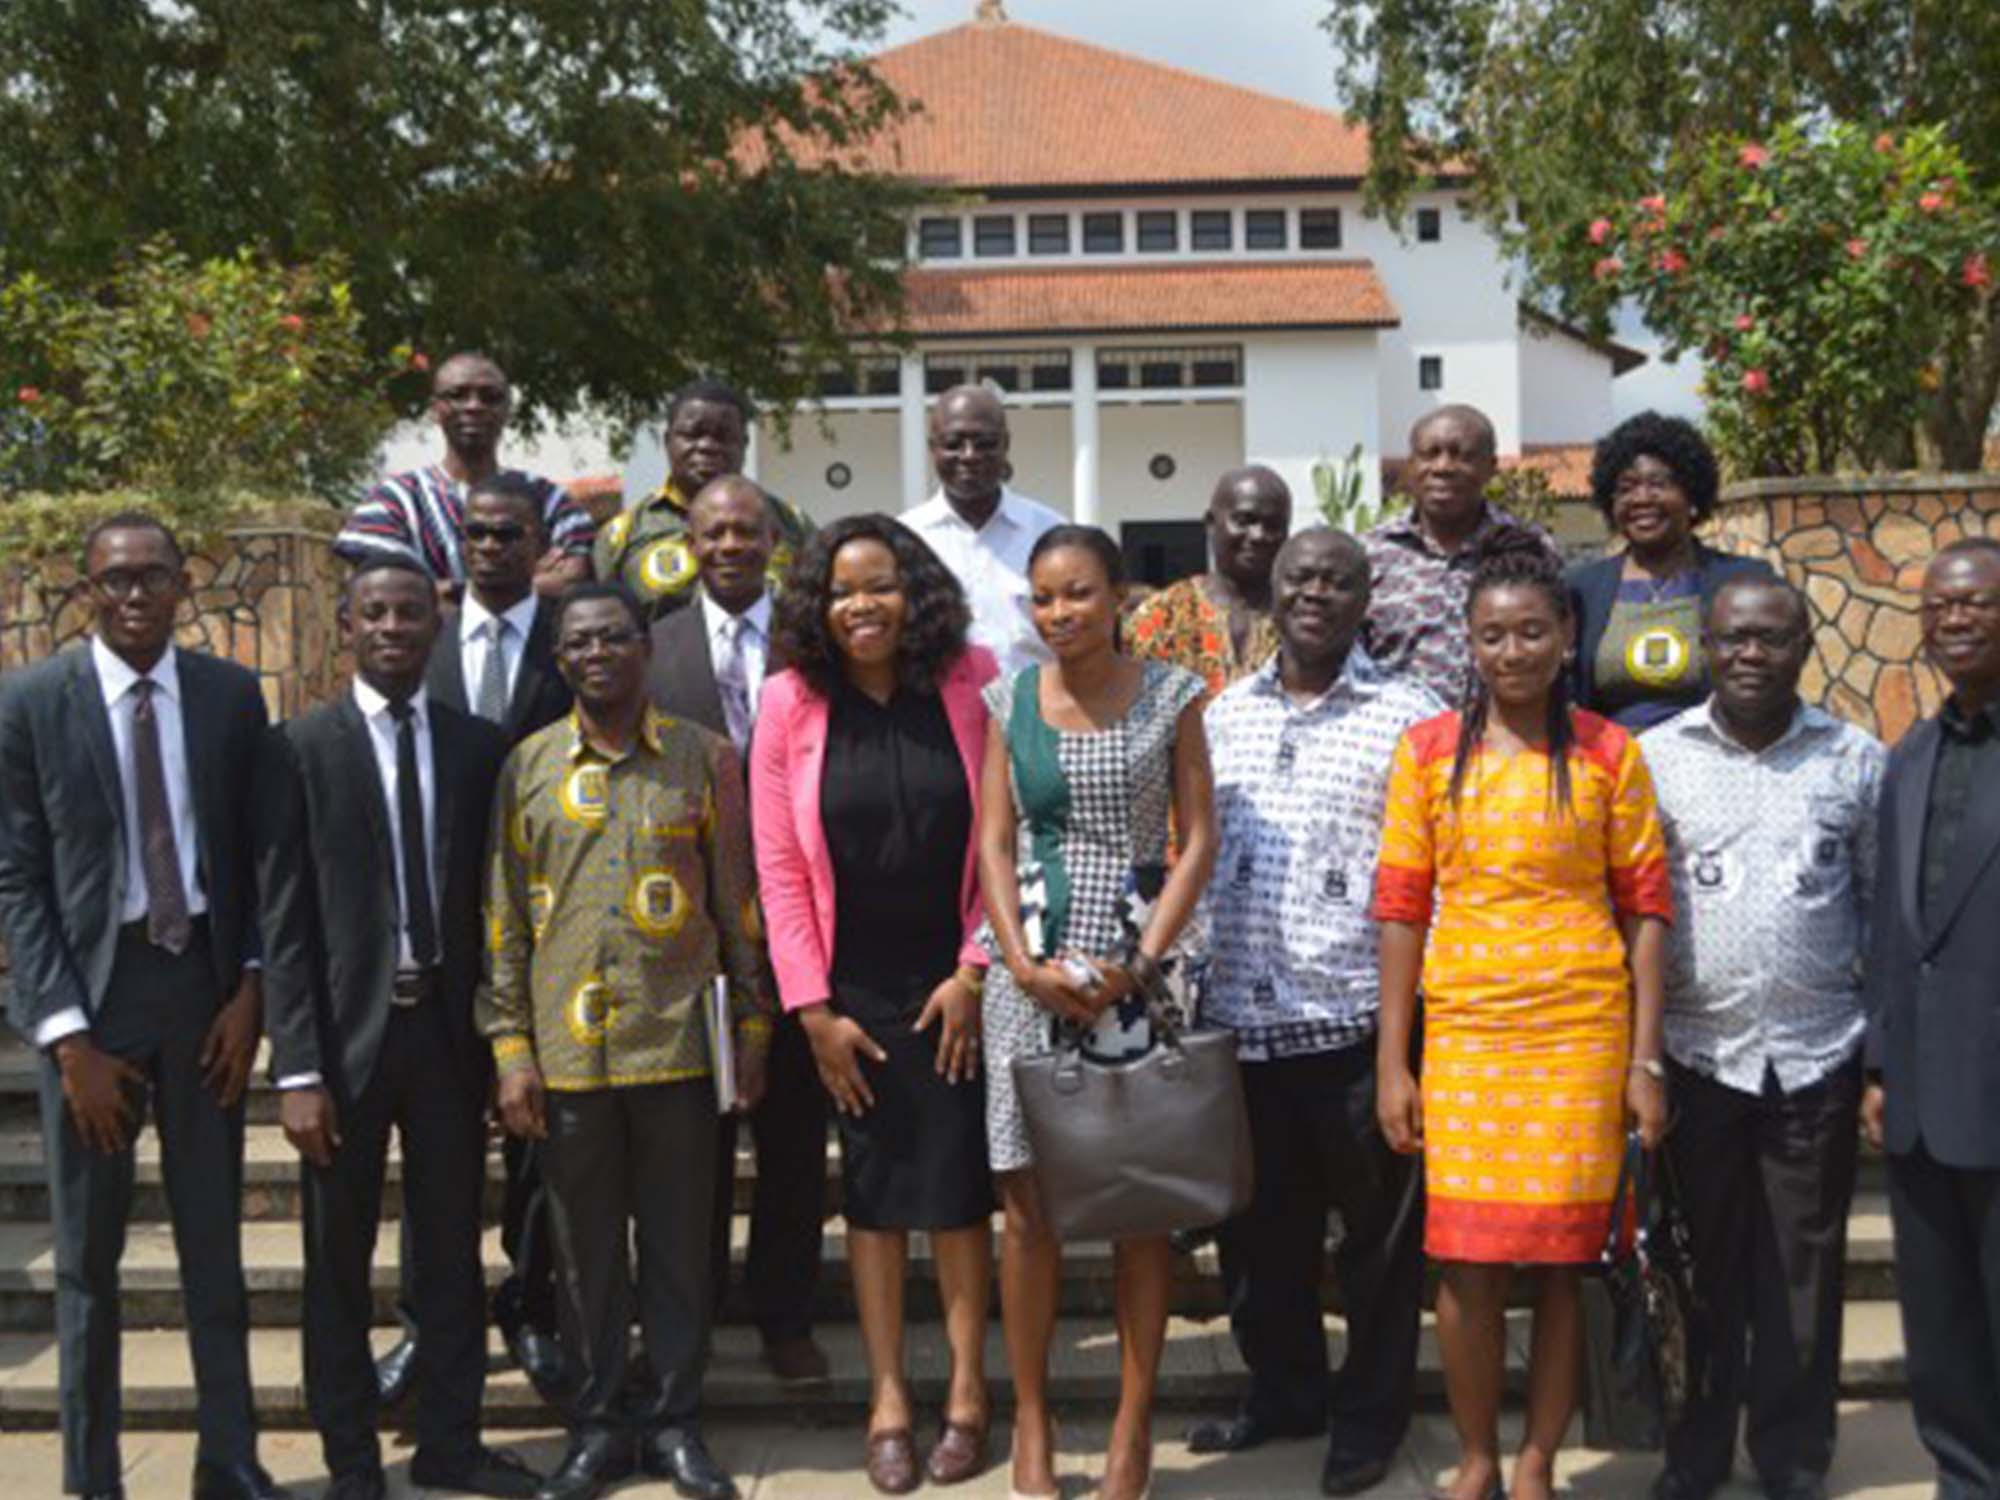 Faculty of the University of Ghana, the awardees and their loved ones right after recieving the Tony & Awele Elumelu Prize